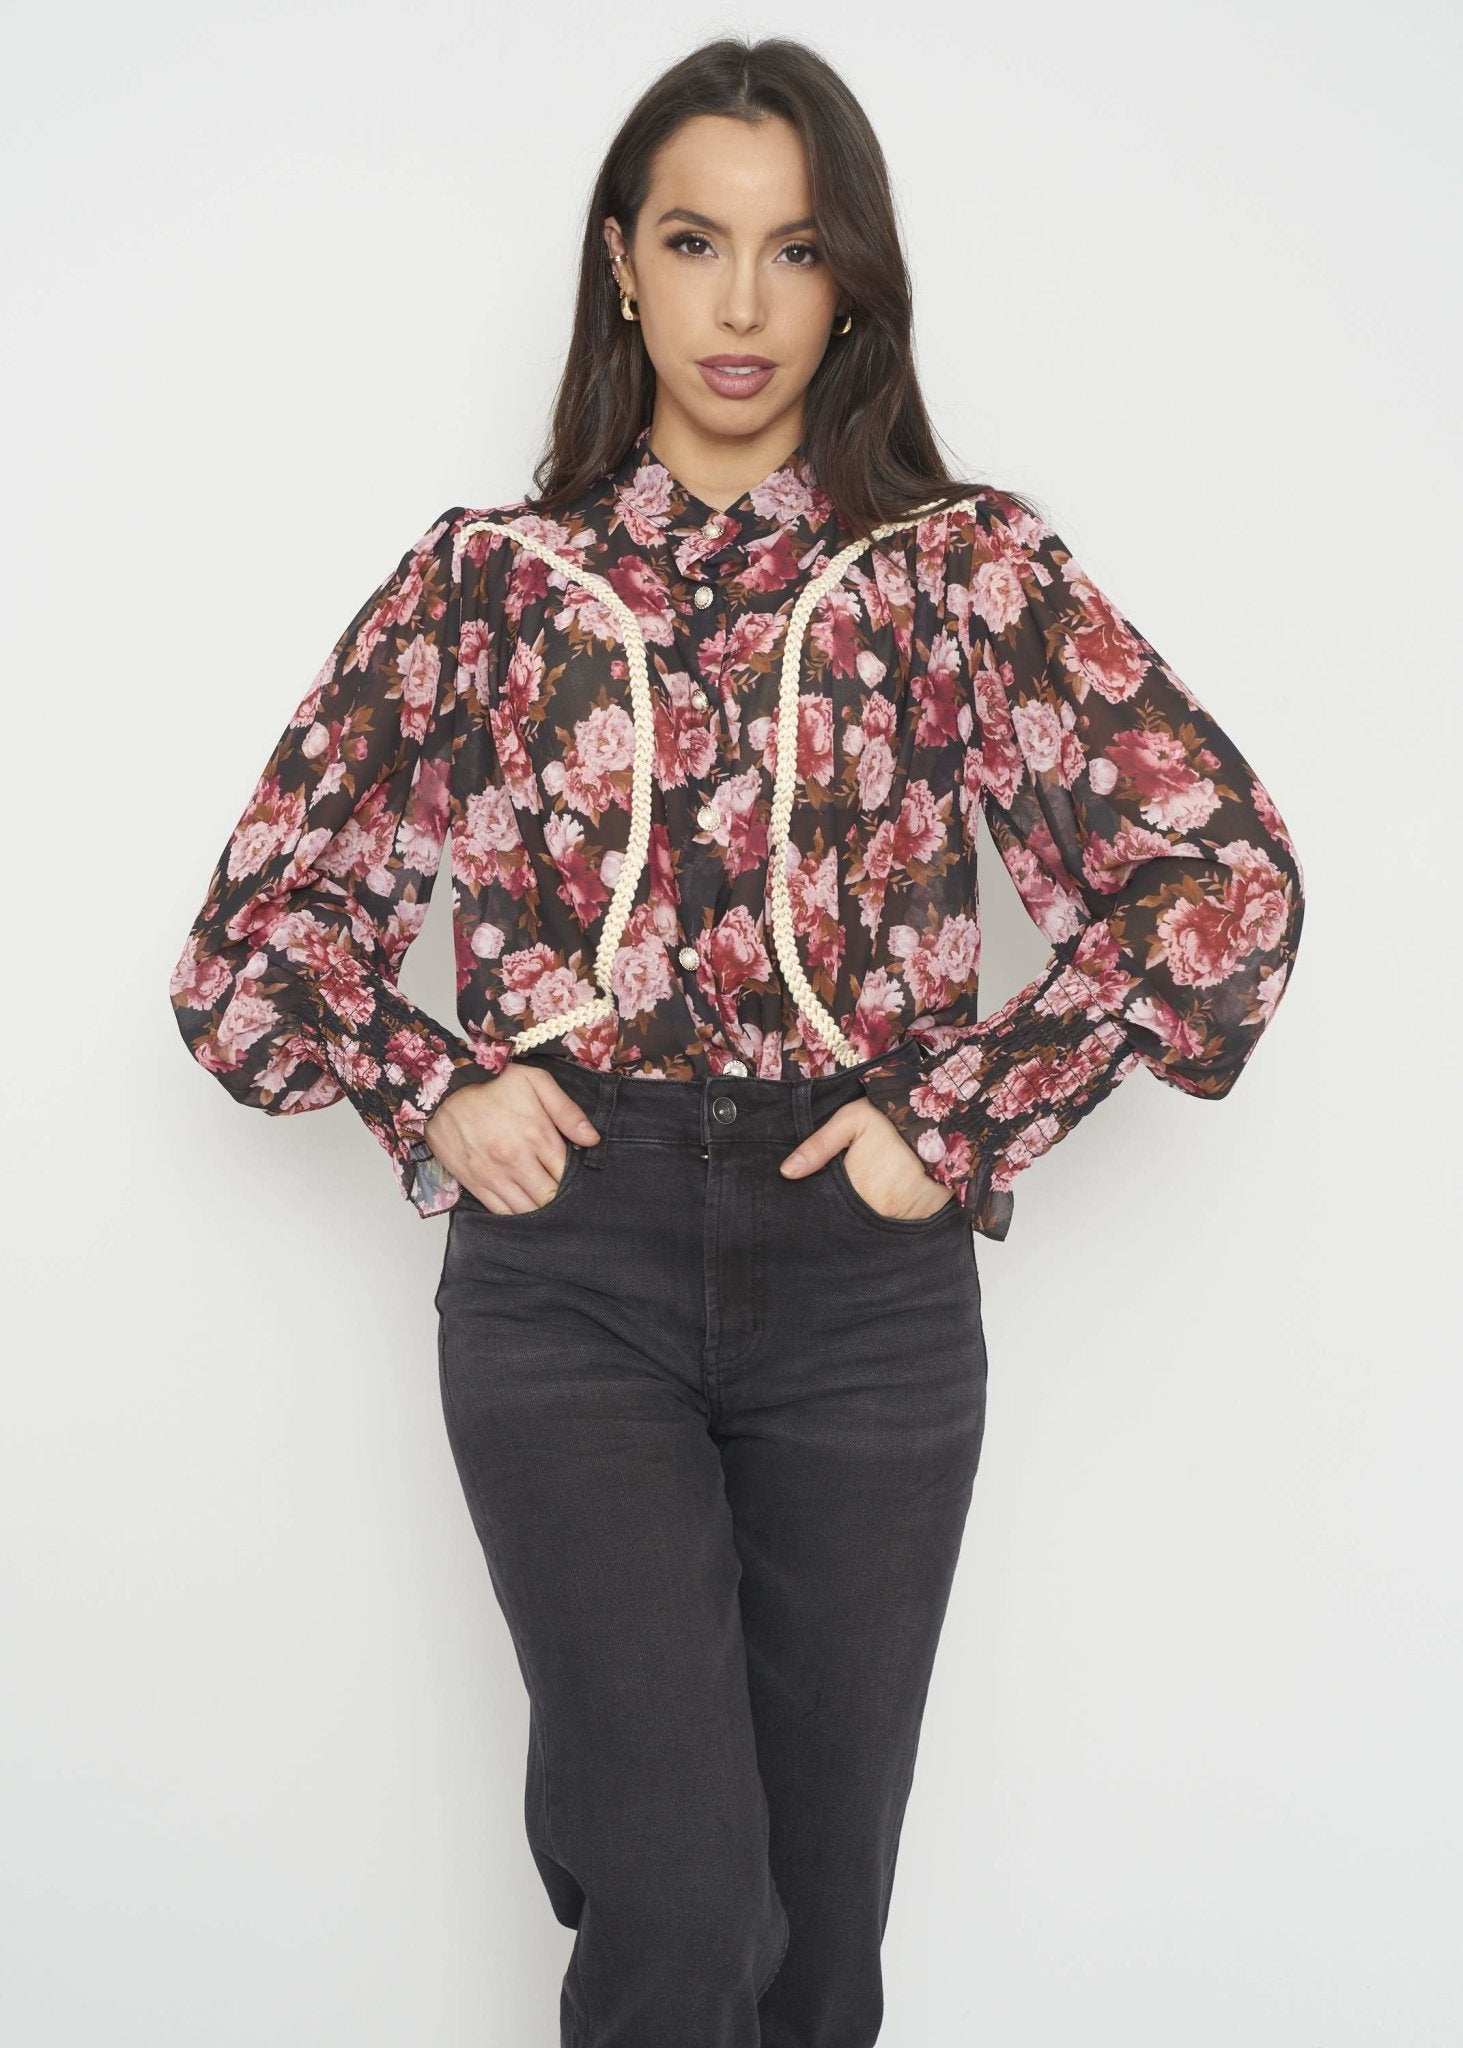 Indie Floral Blouse In Red Mix - The Walk in Wardrobe